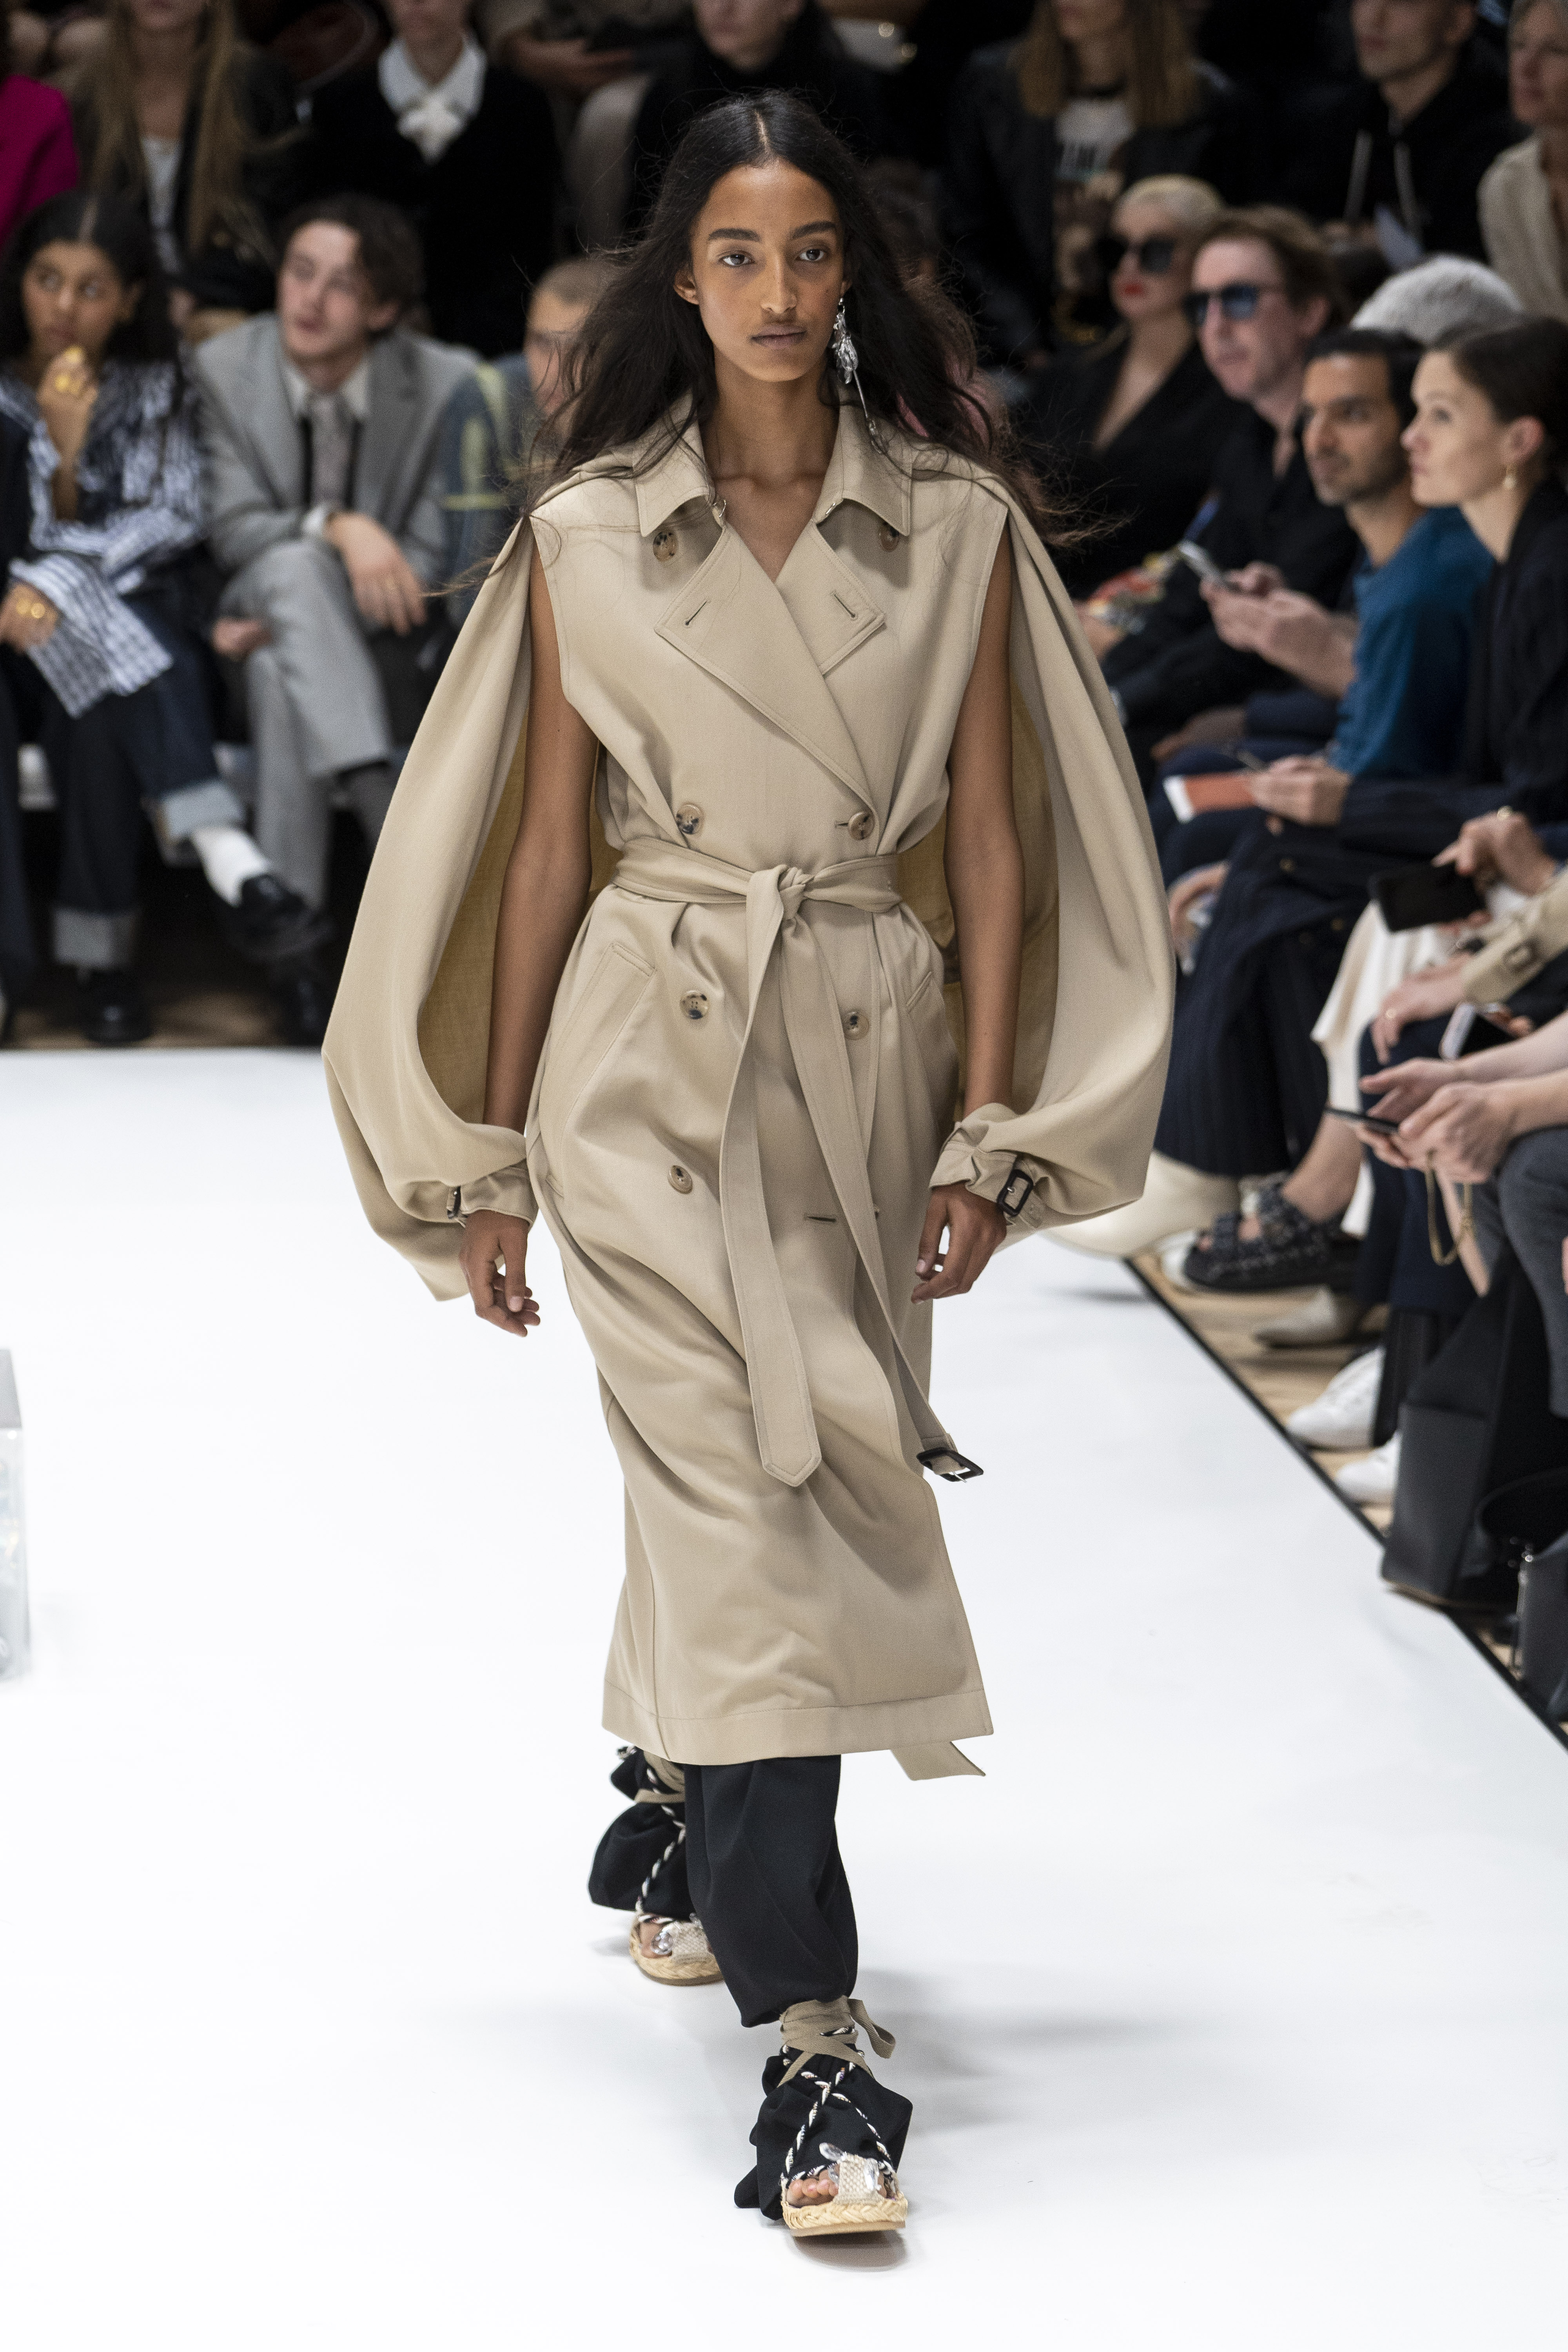 fashions trends new trend coat